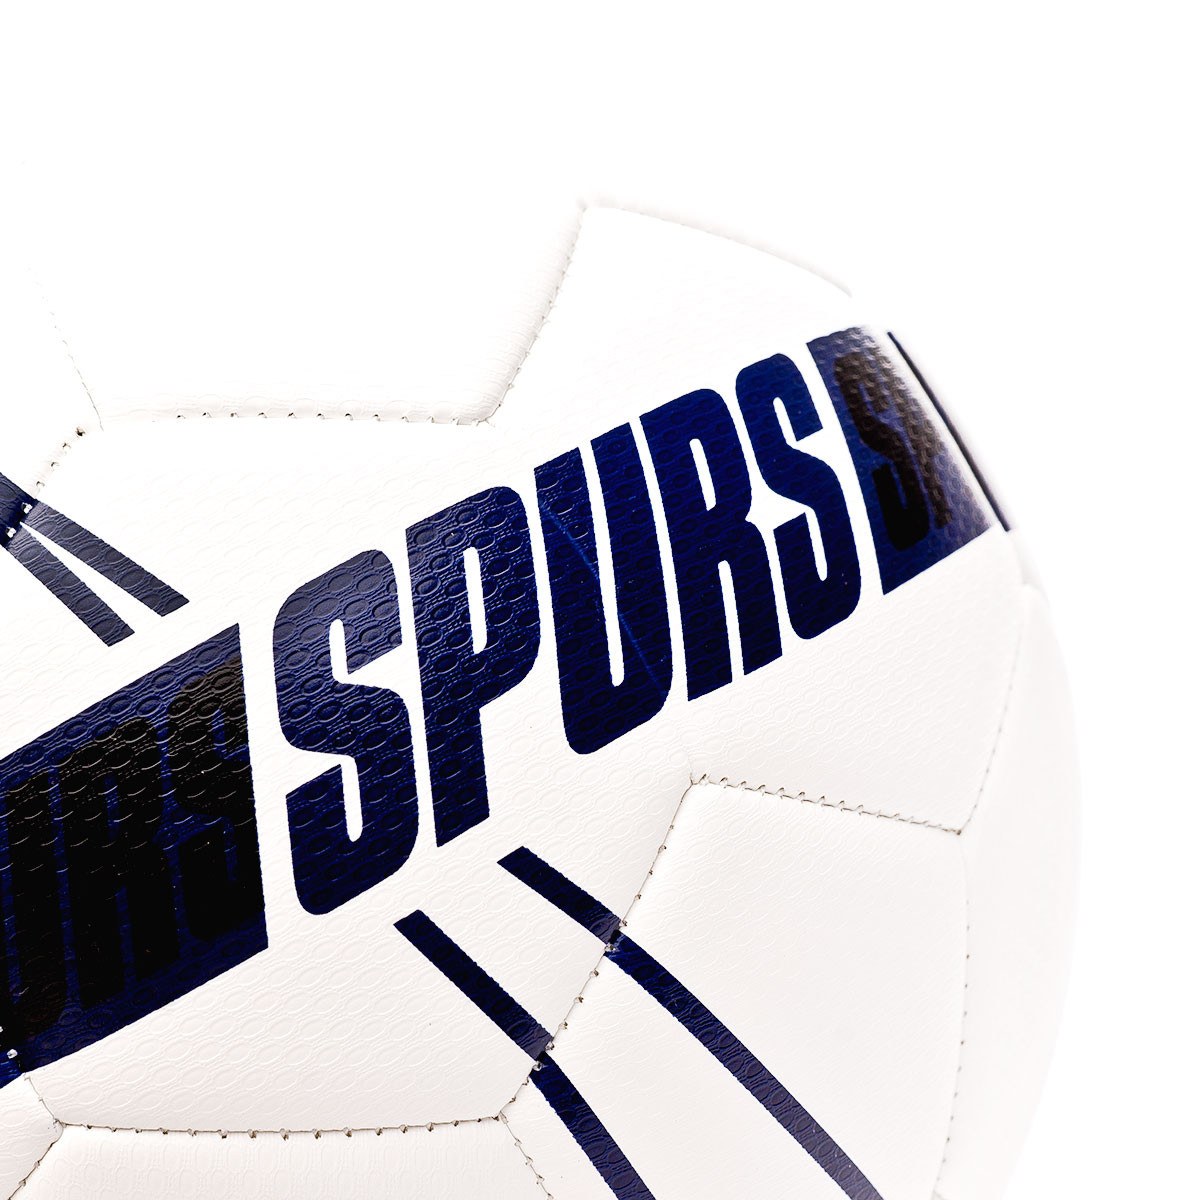 Ball Nike Tottenham Hotspur Prestige 2019 2020 White Black Binary Blue Football Store Futbol Emotion